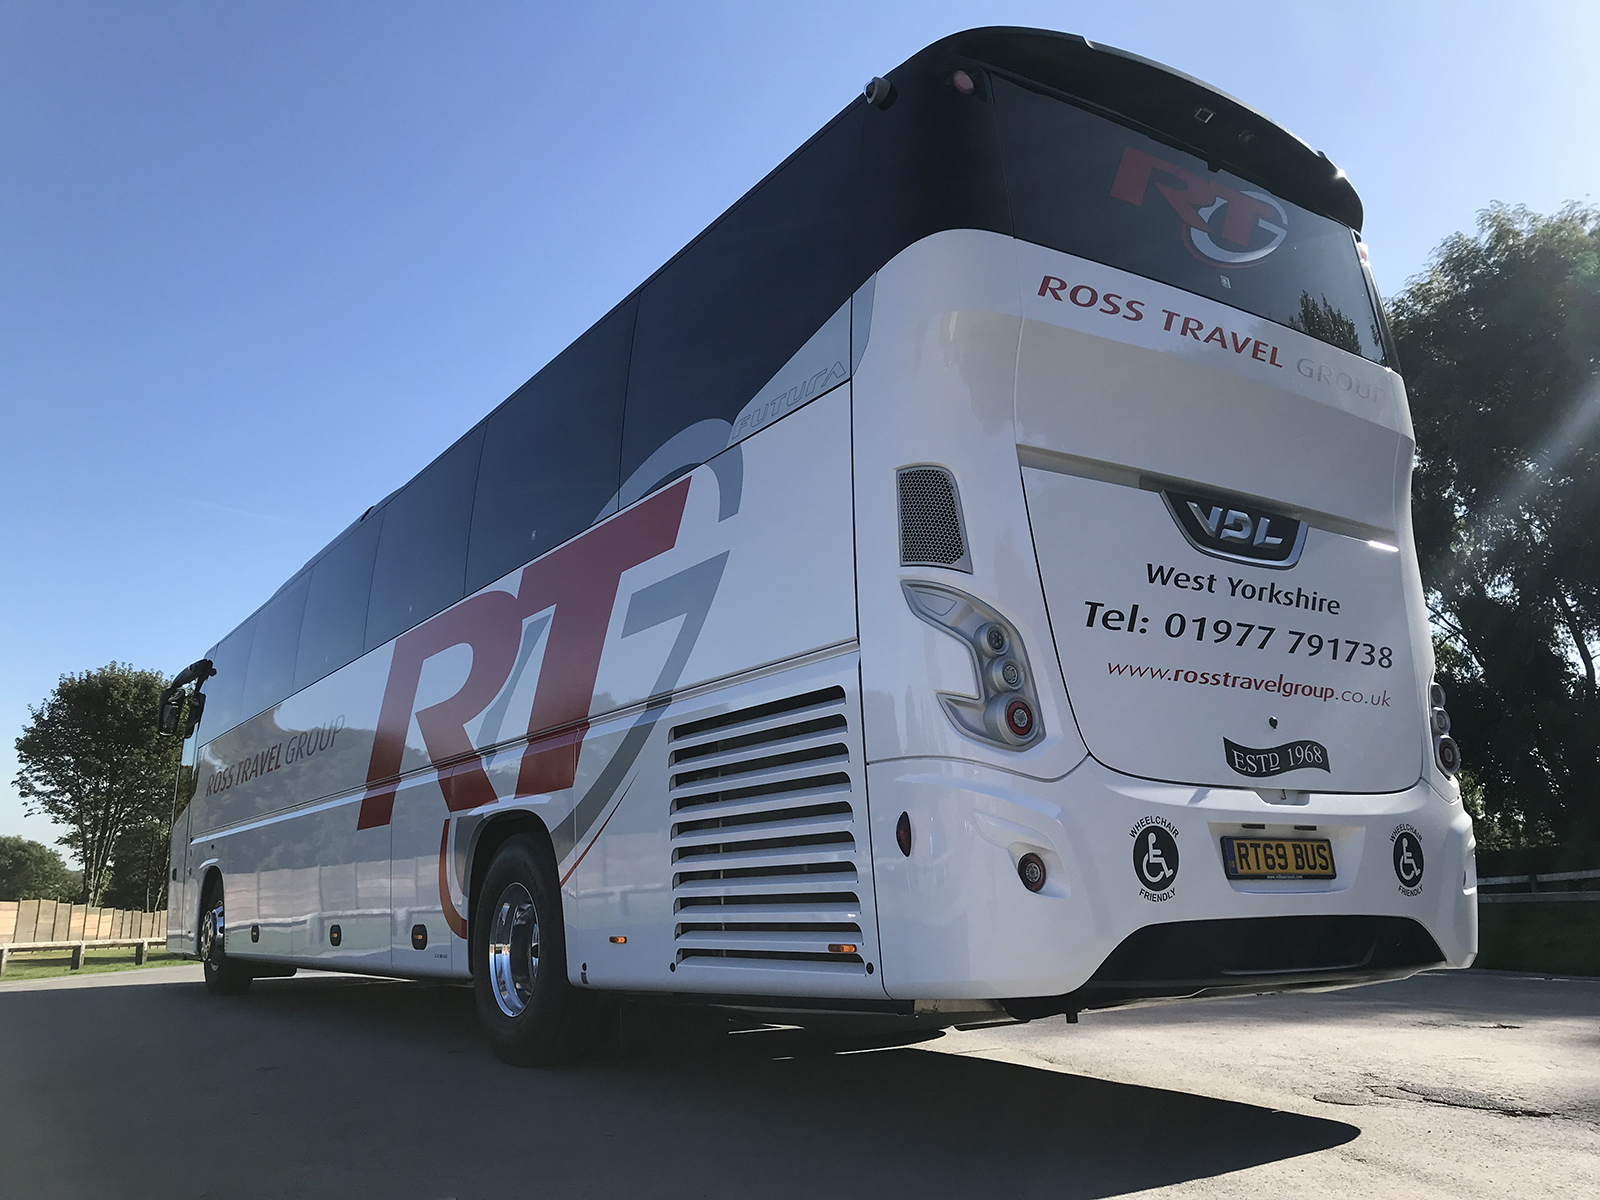 ross travel group coach